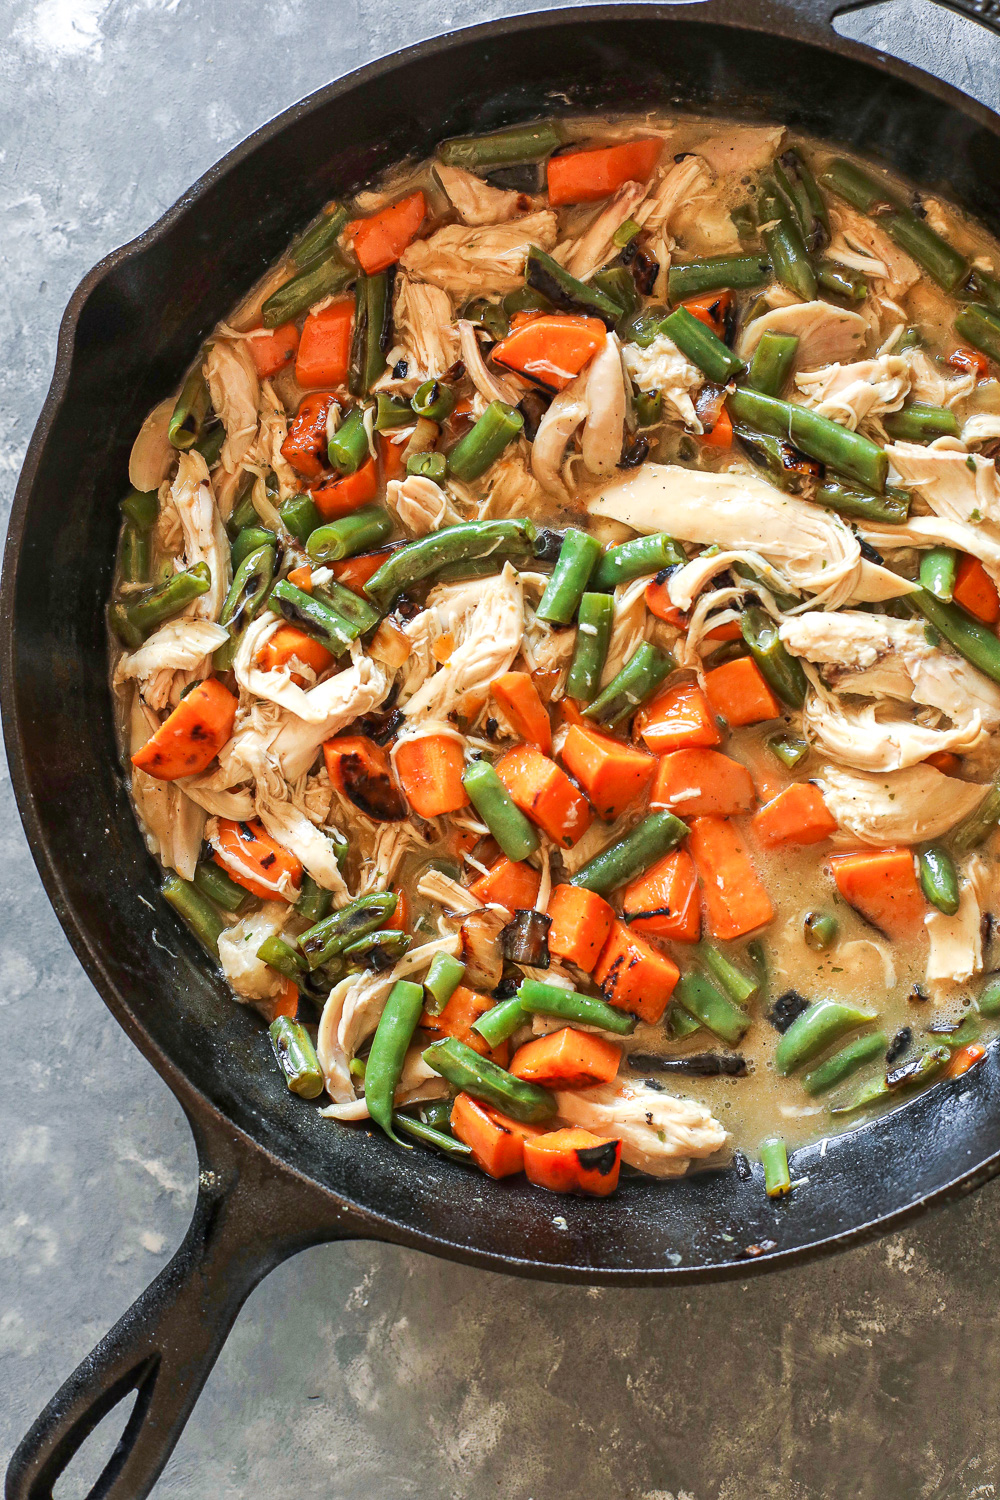 This Creamy Harvest Skillet is a quick 20 minute dinner that is Whole30 compliant and delicious!